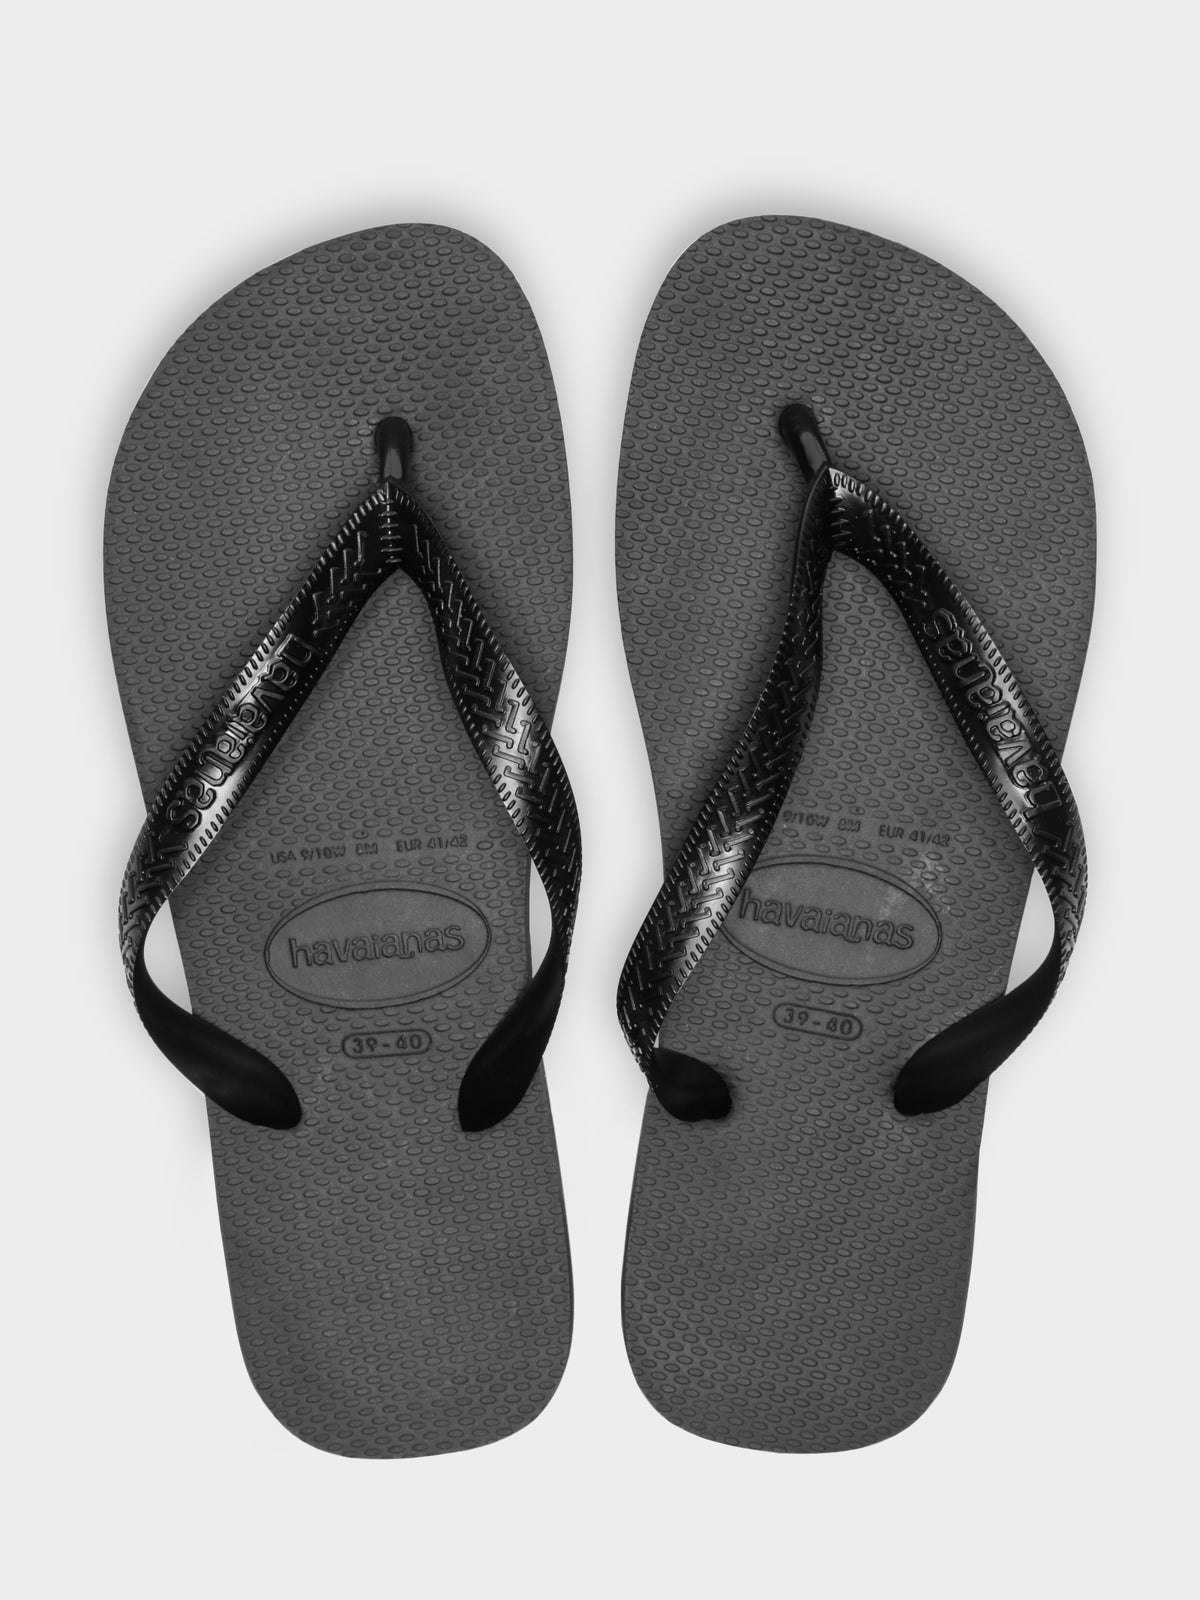 Havaianas Top Thongs in Black